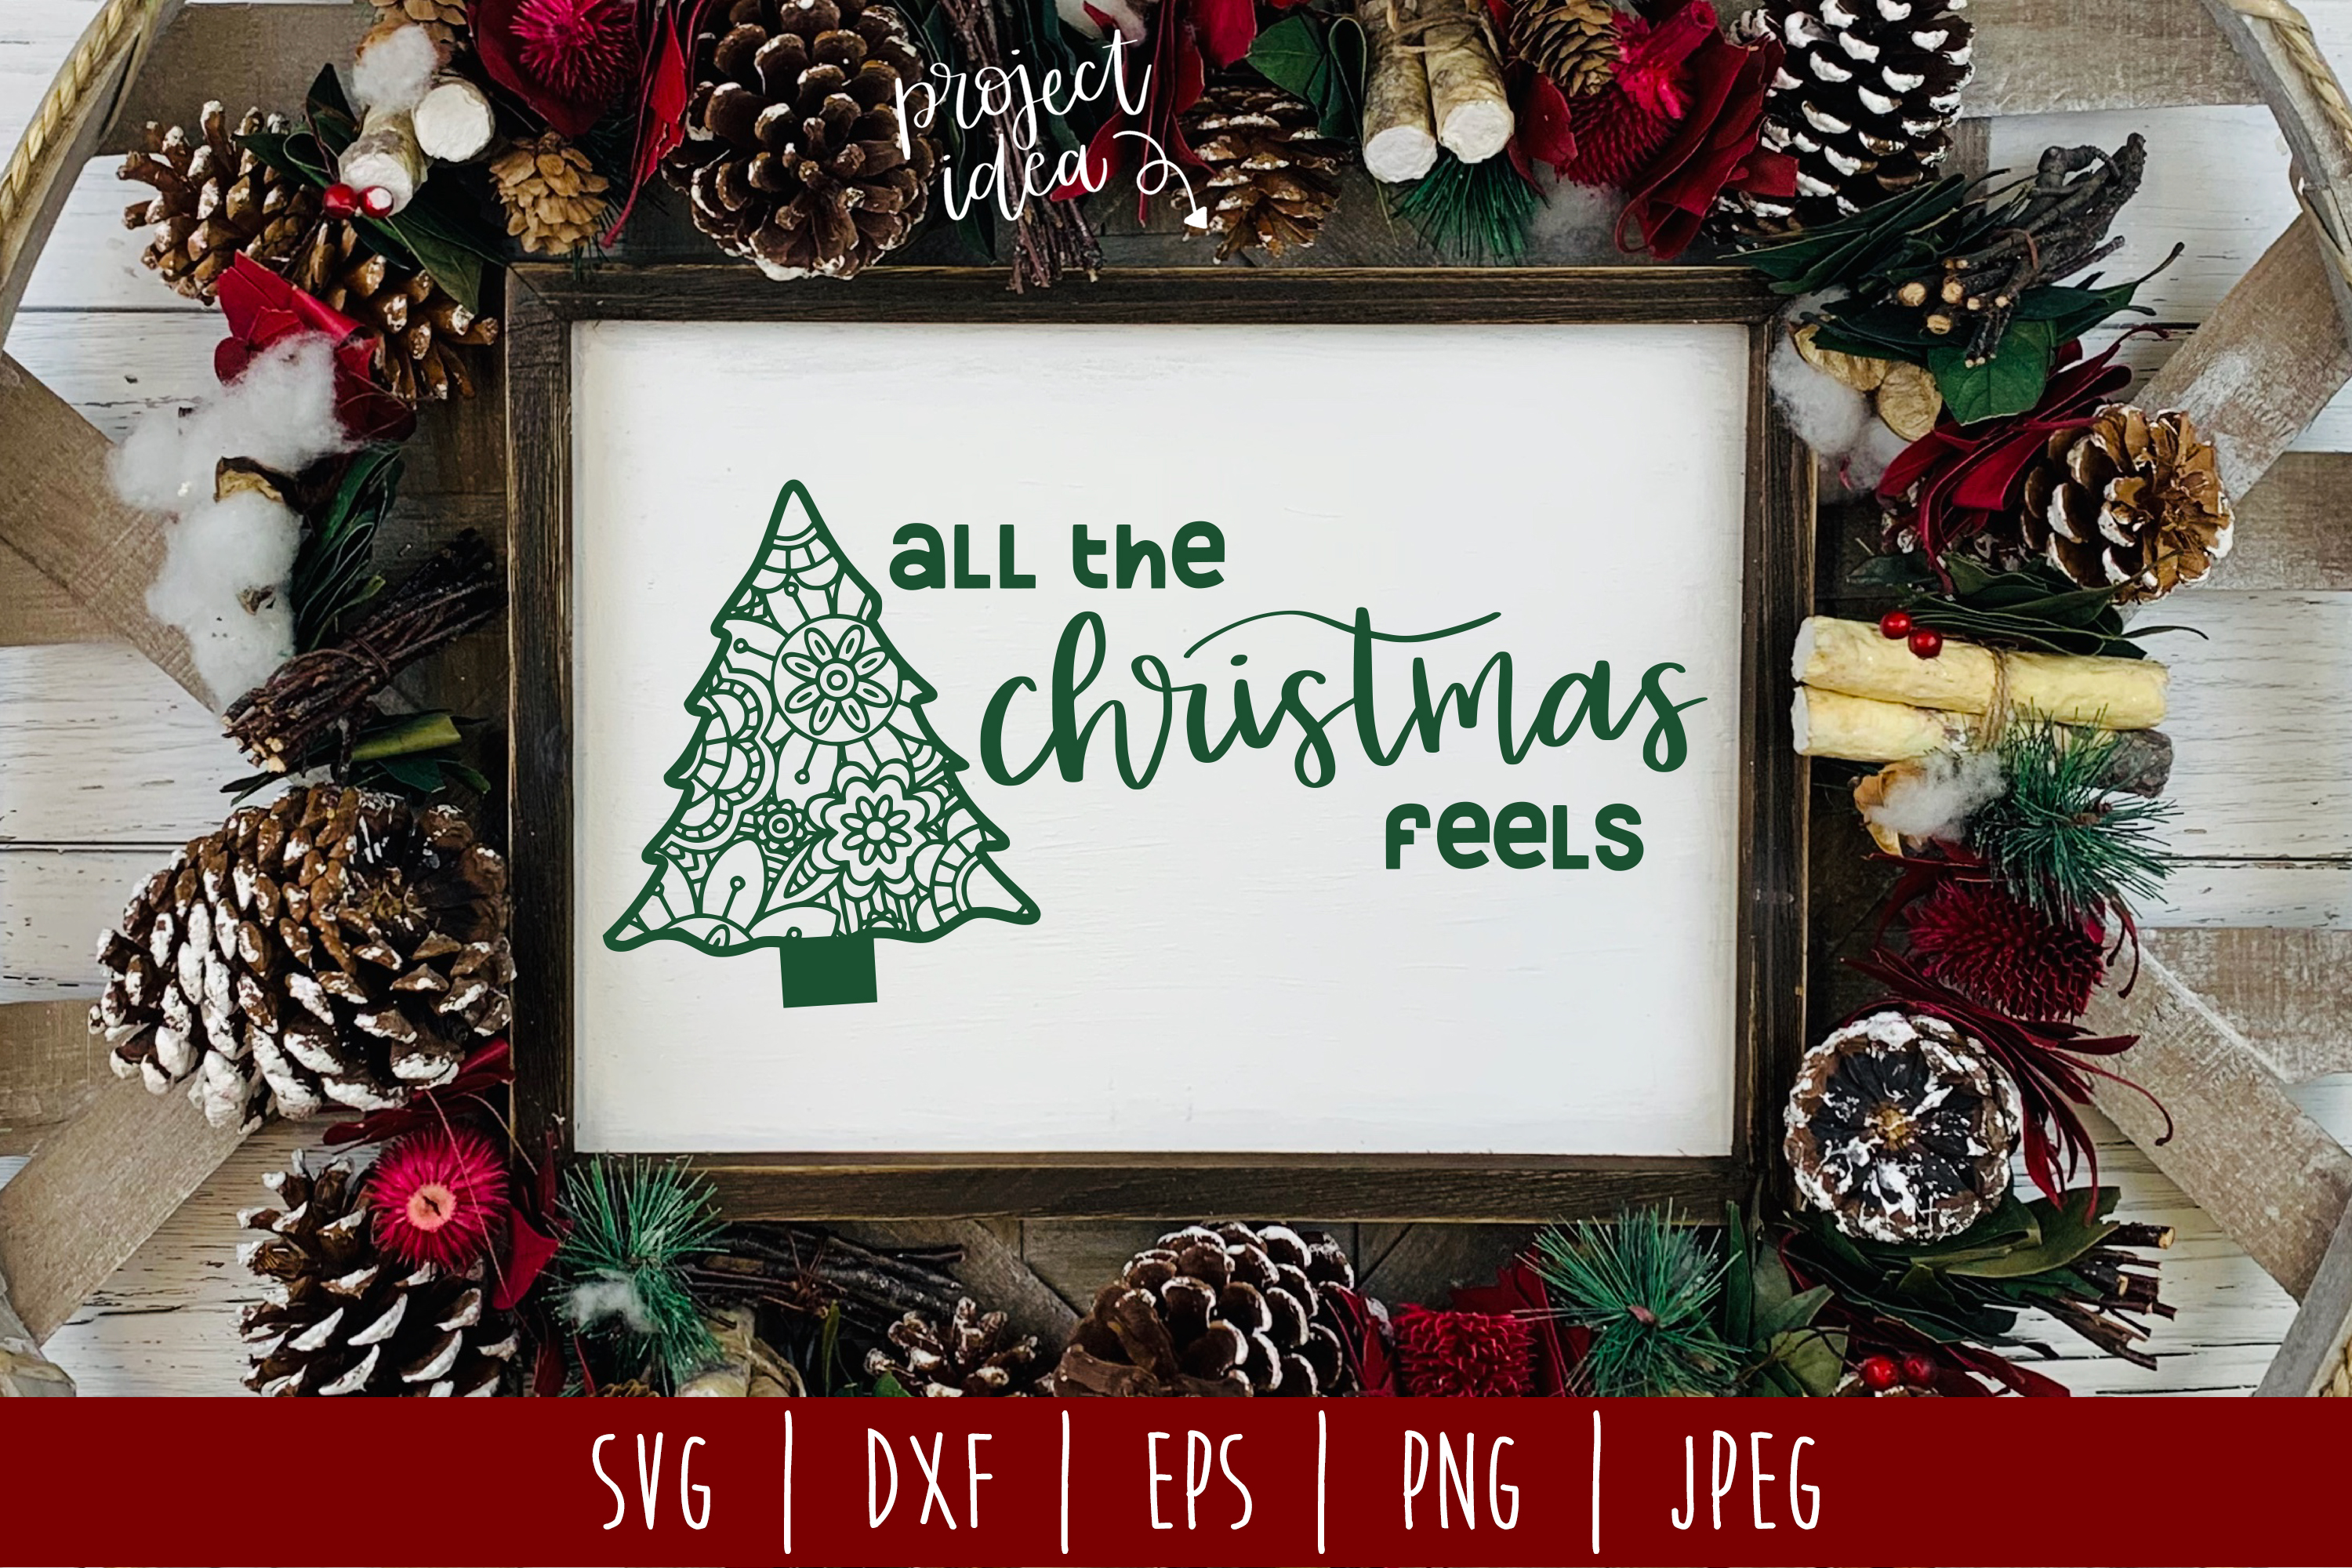 Download Free All The Christmas Feels Svg Graphic By Savoringsurprises for Cricut Explore, Silhouette and other cutting machines.